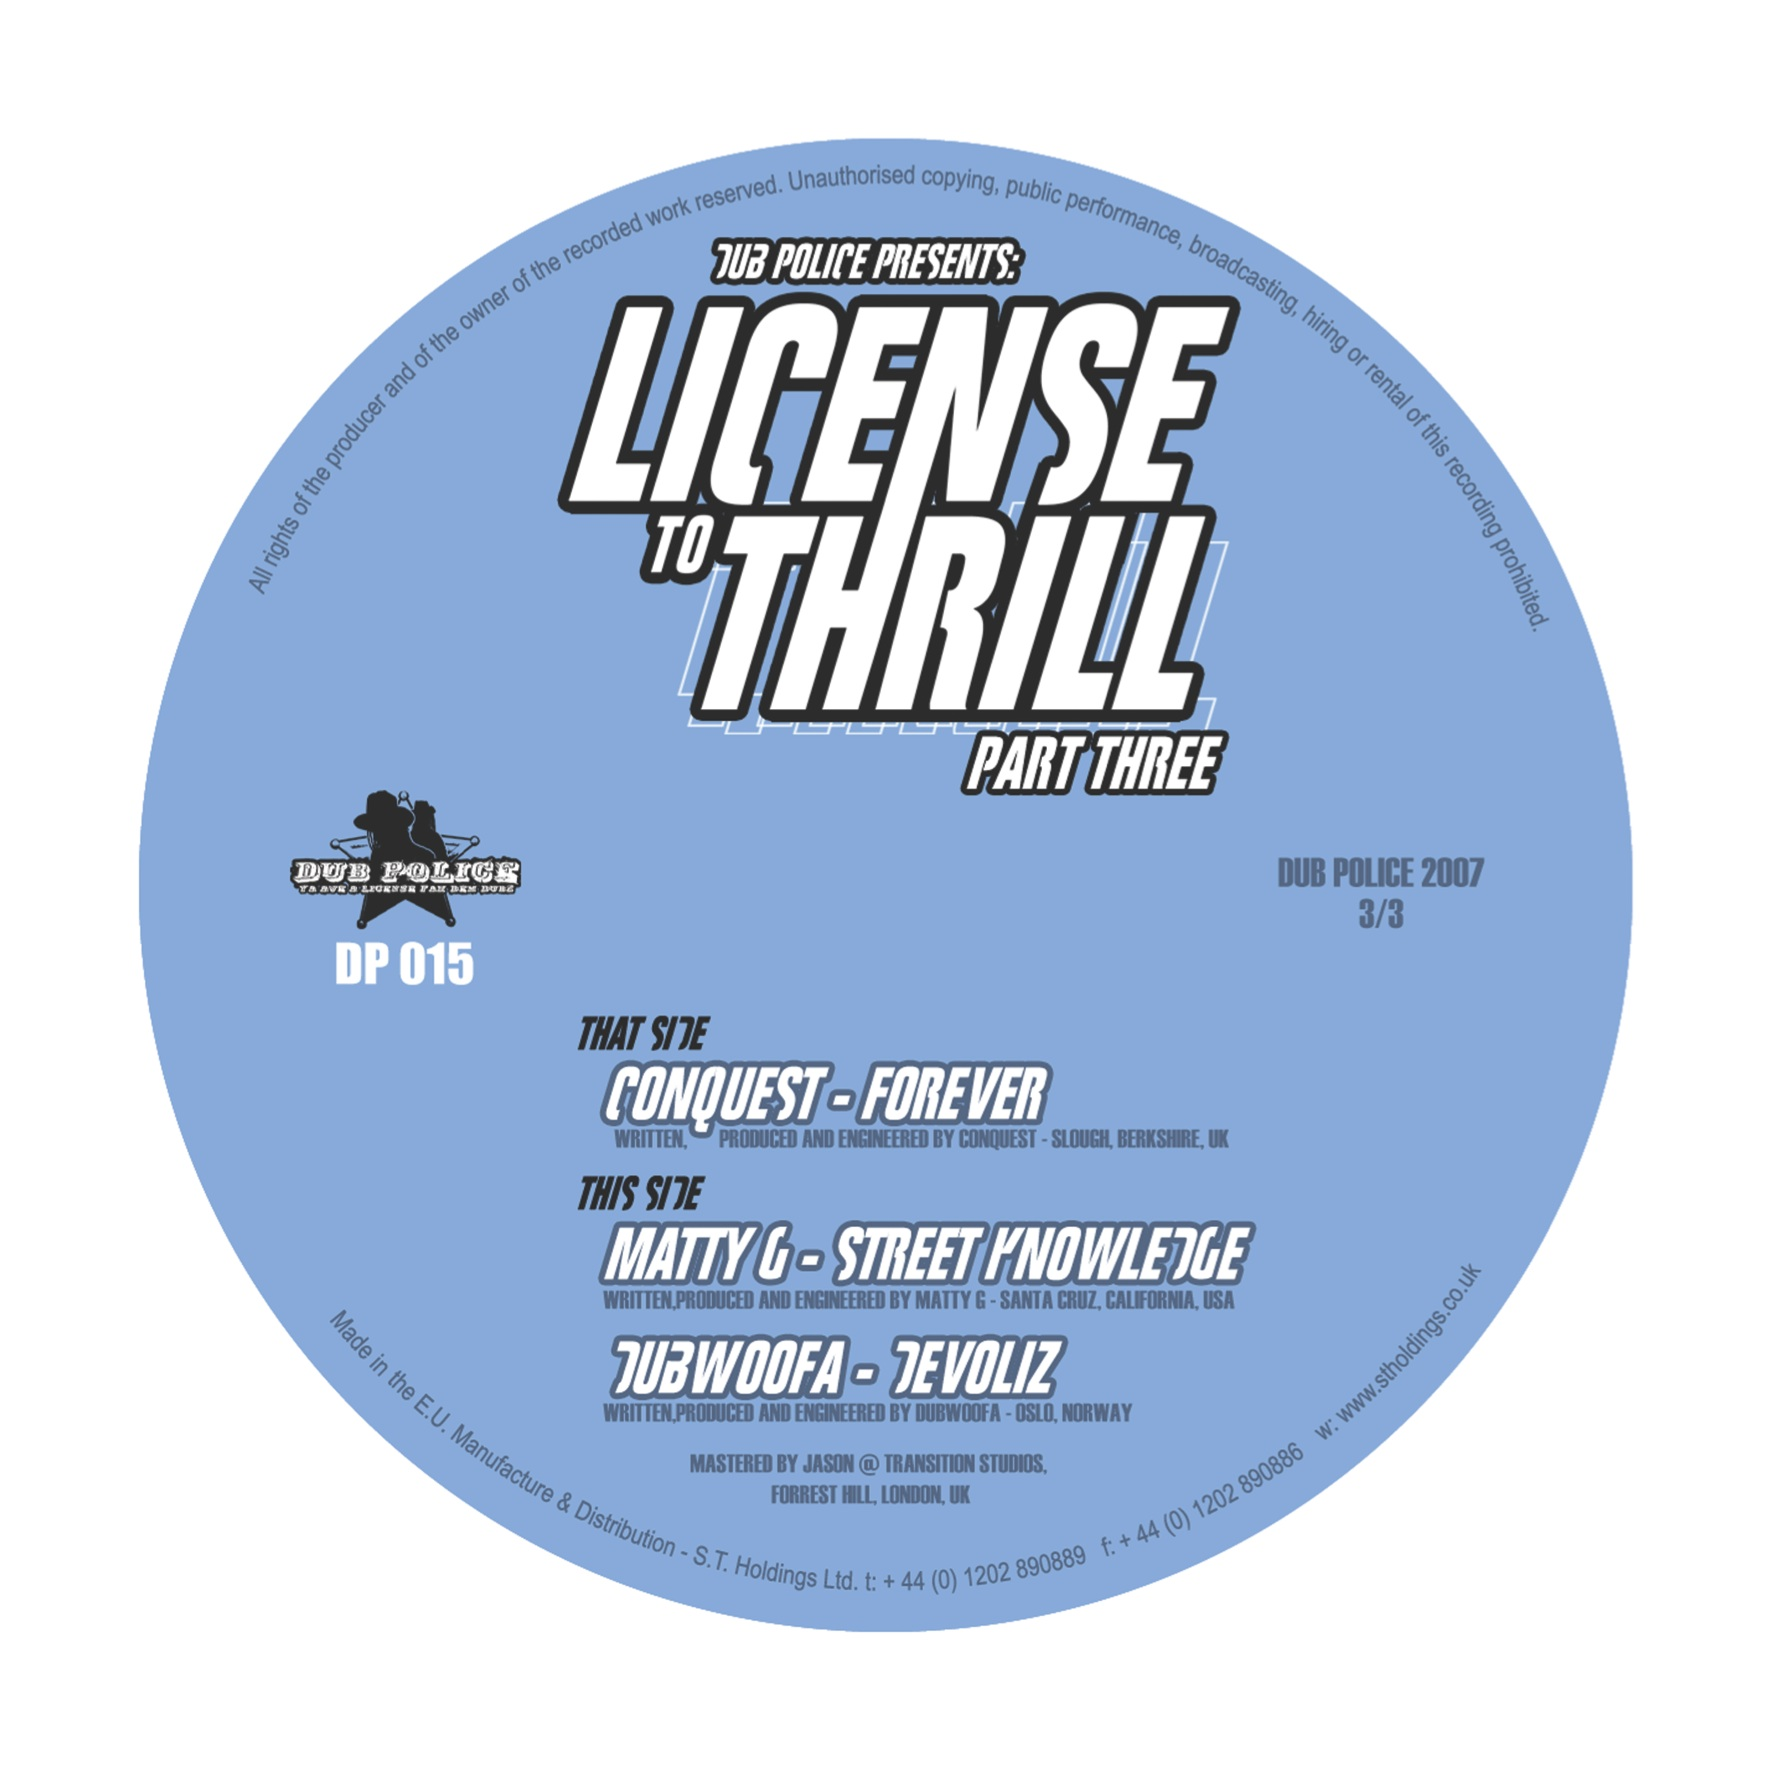 DP015: LICENSE TO THRILL PT. 3